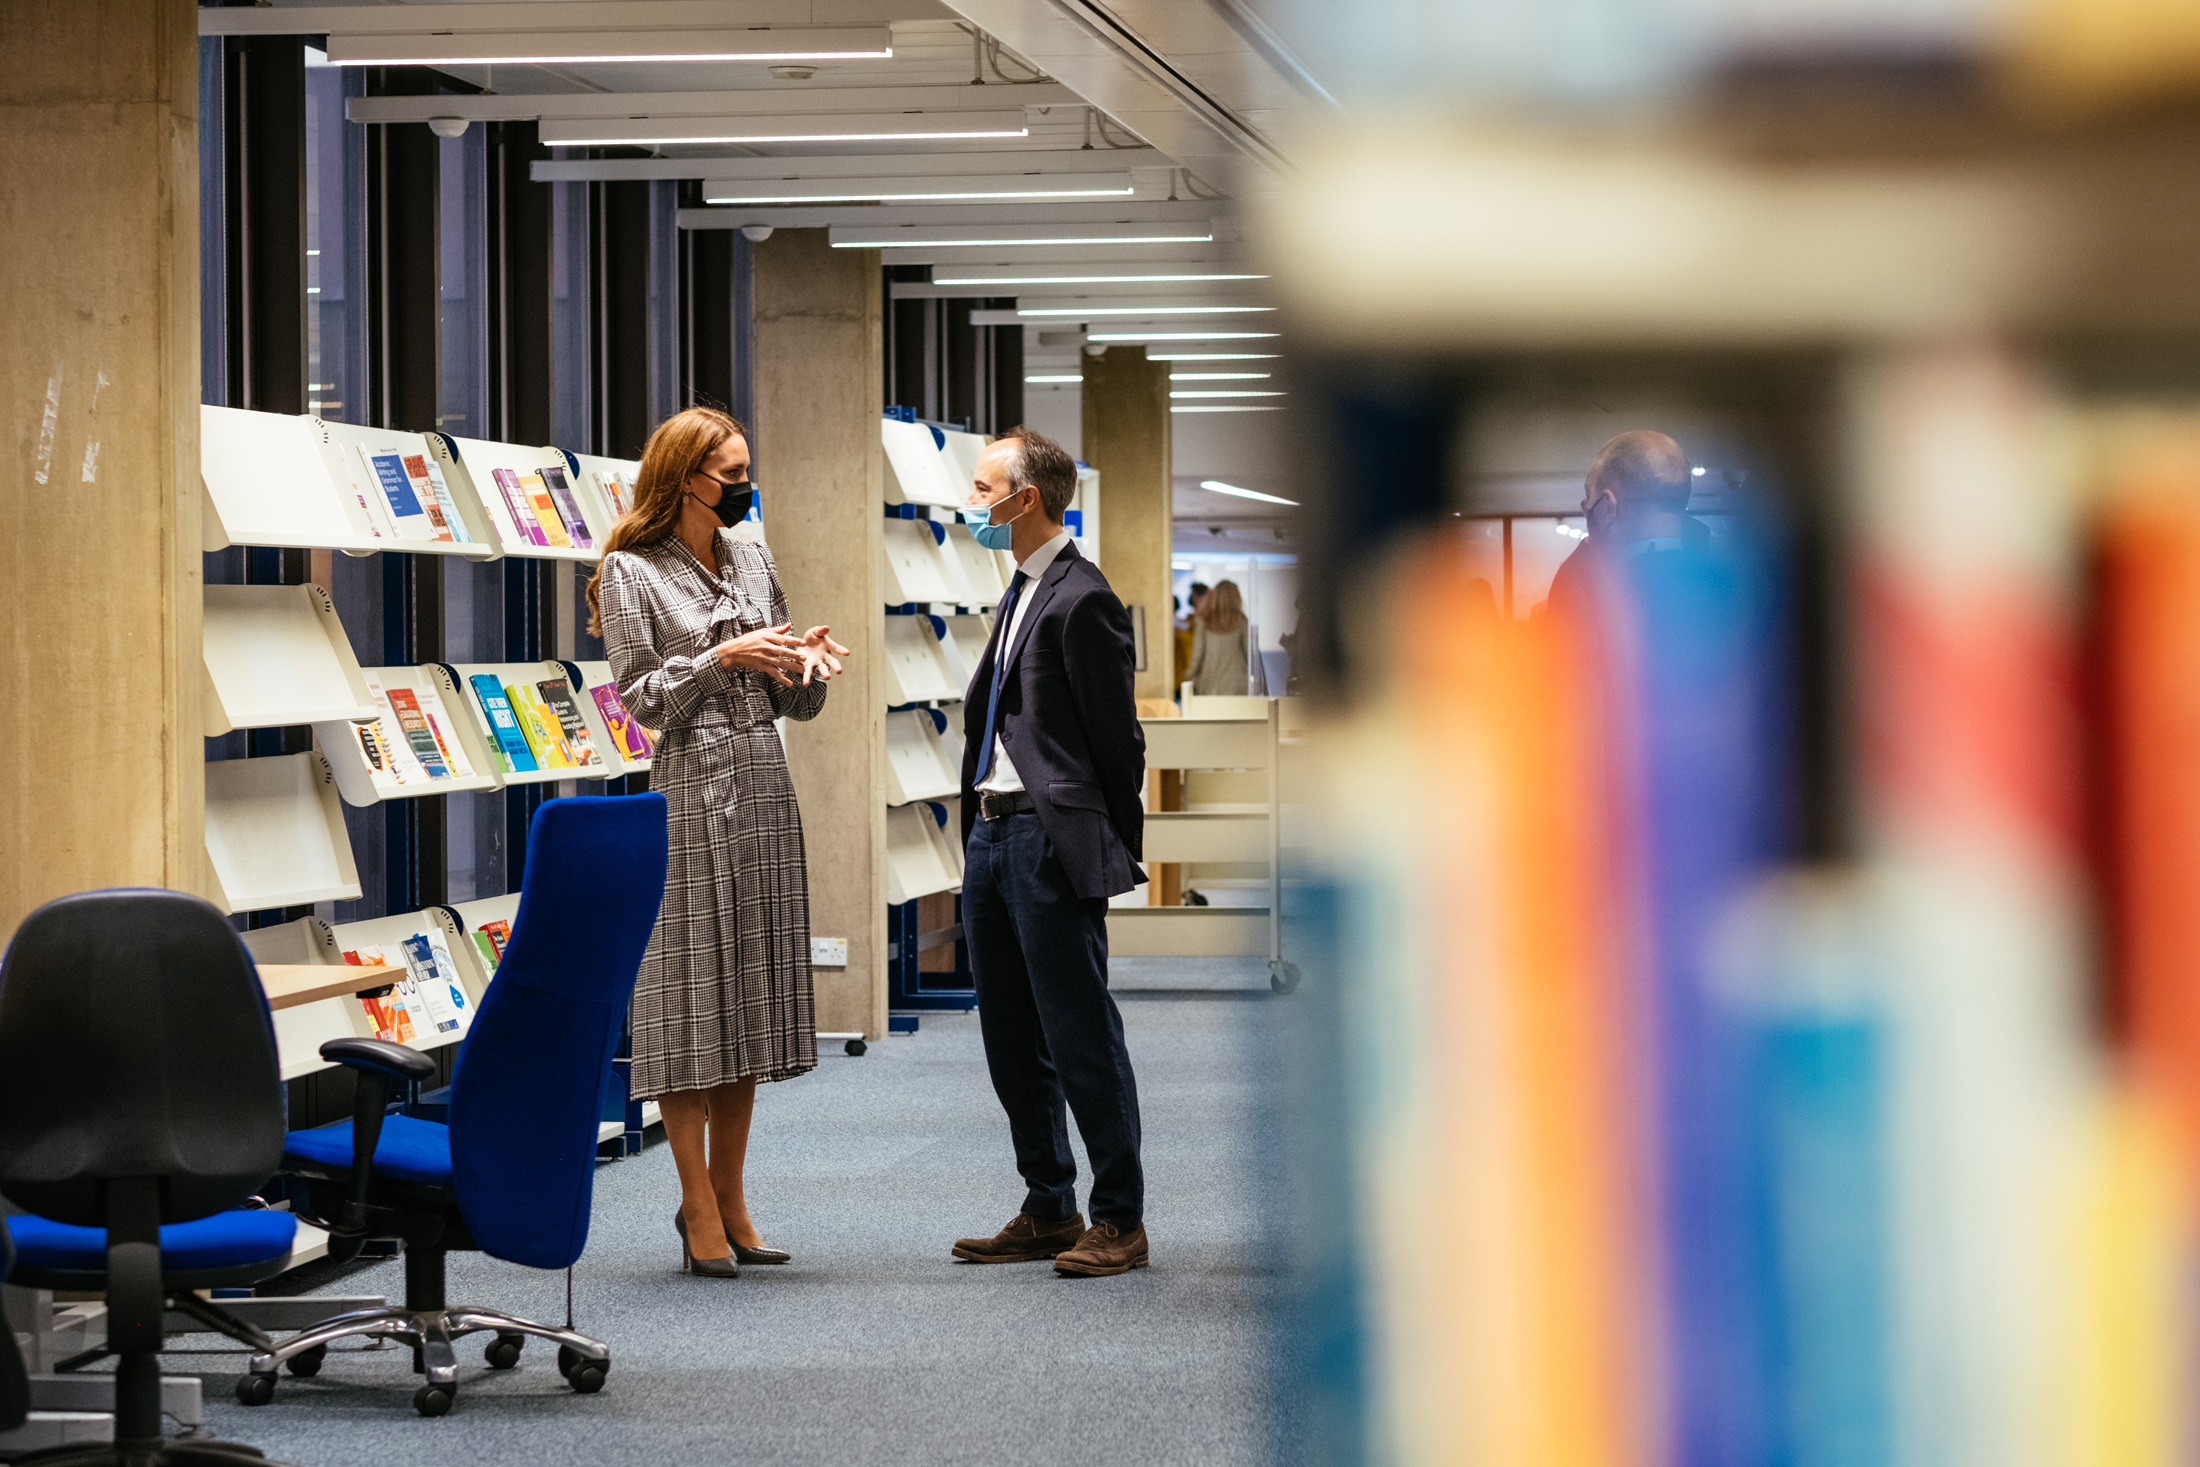 The Duchess of Cambridge and Pasco Fearon talking in the IOE Library